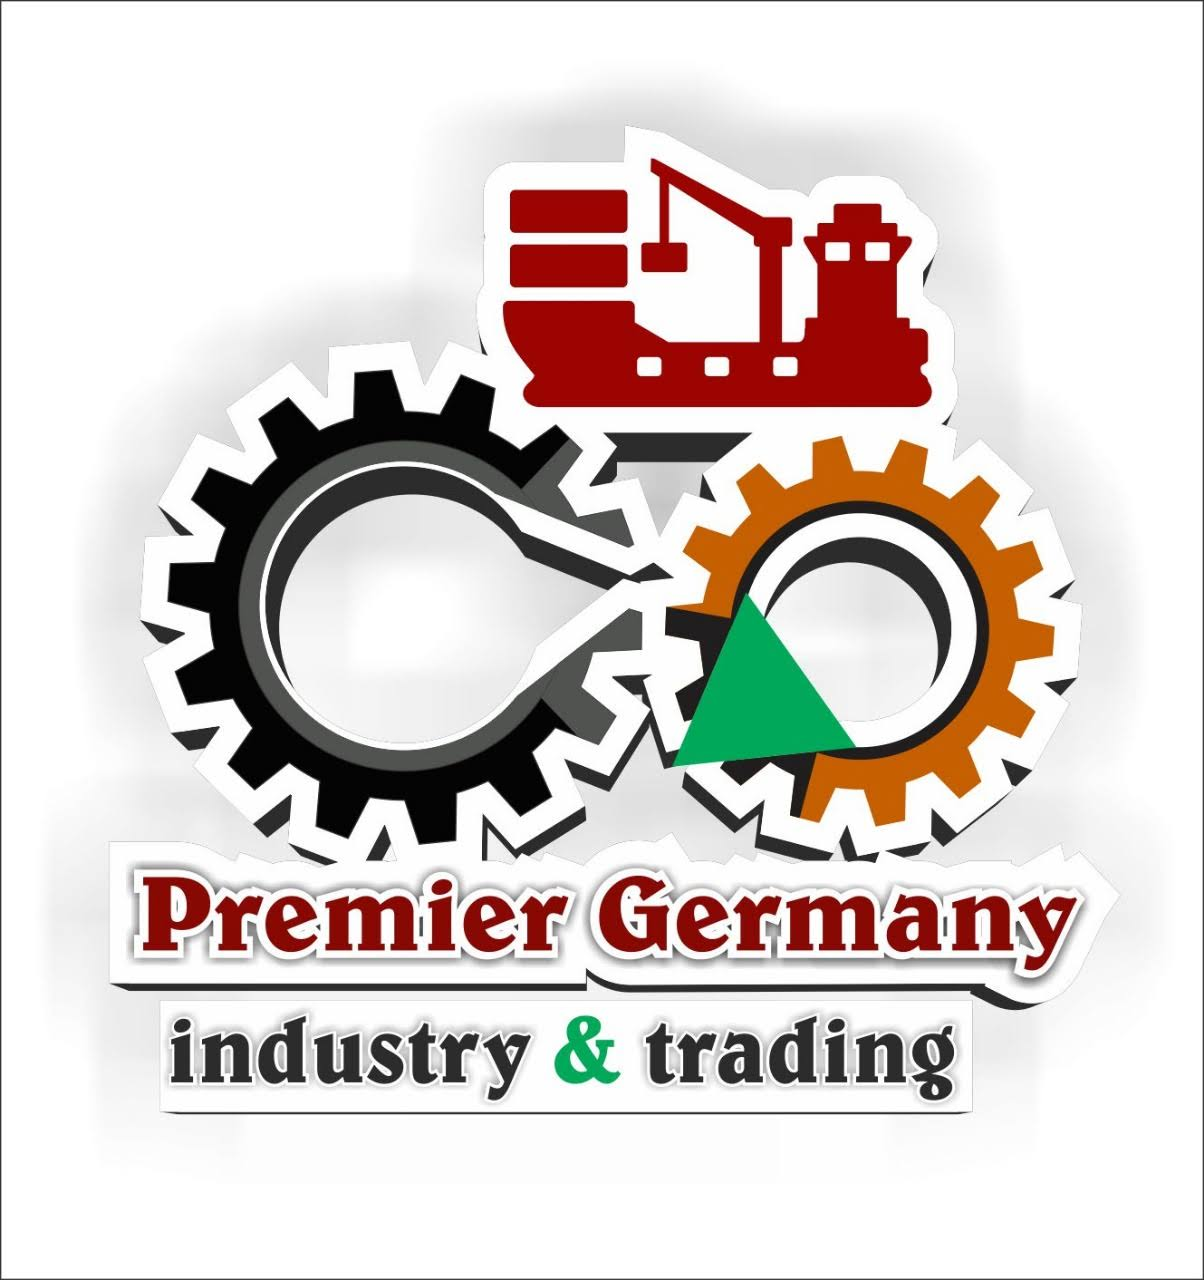 Premier Germany Group Profile Picture